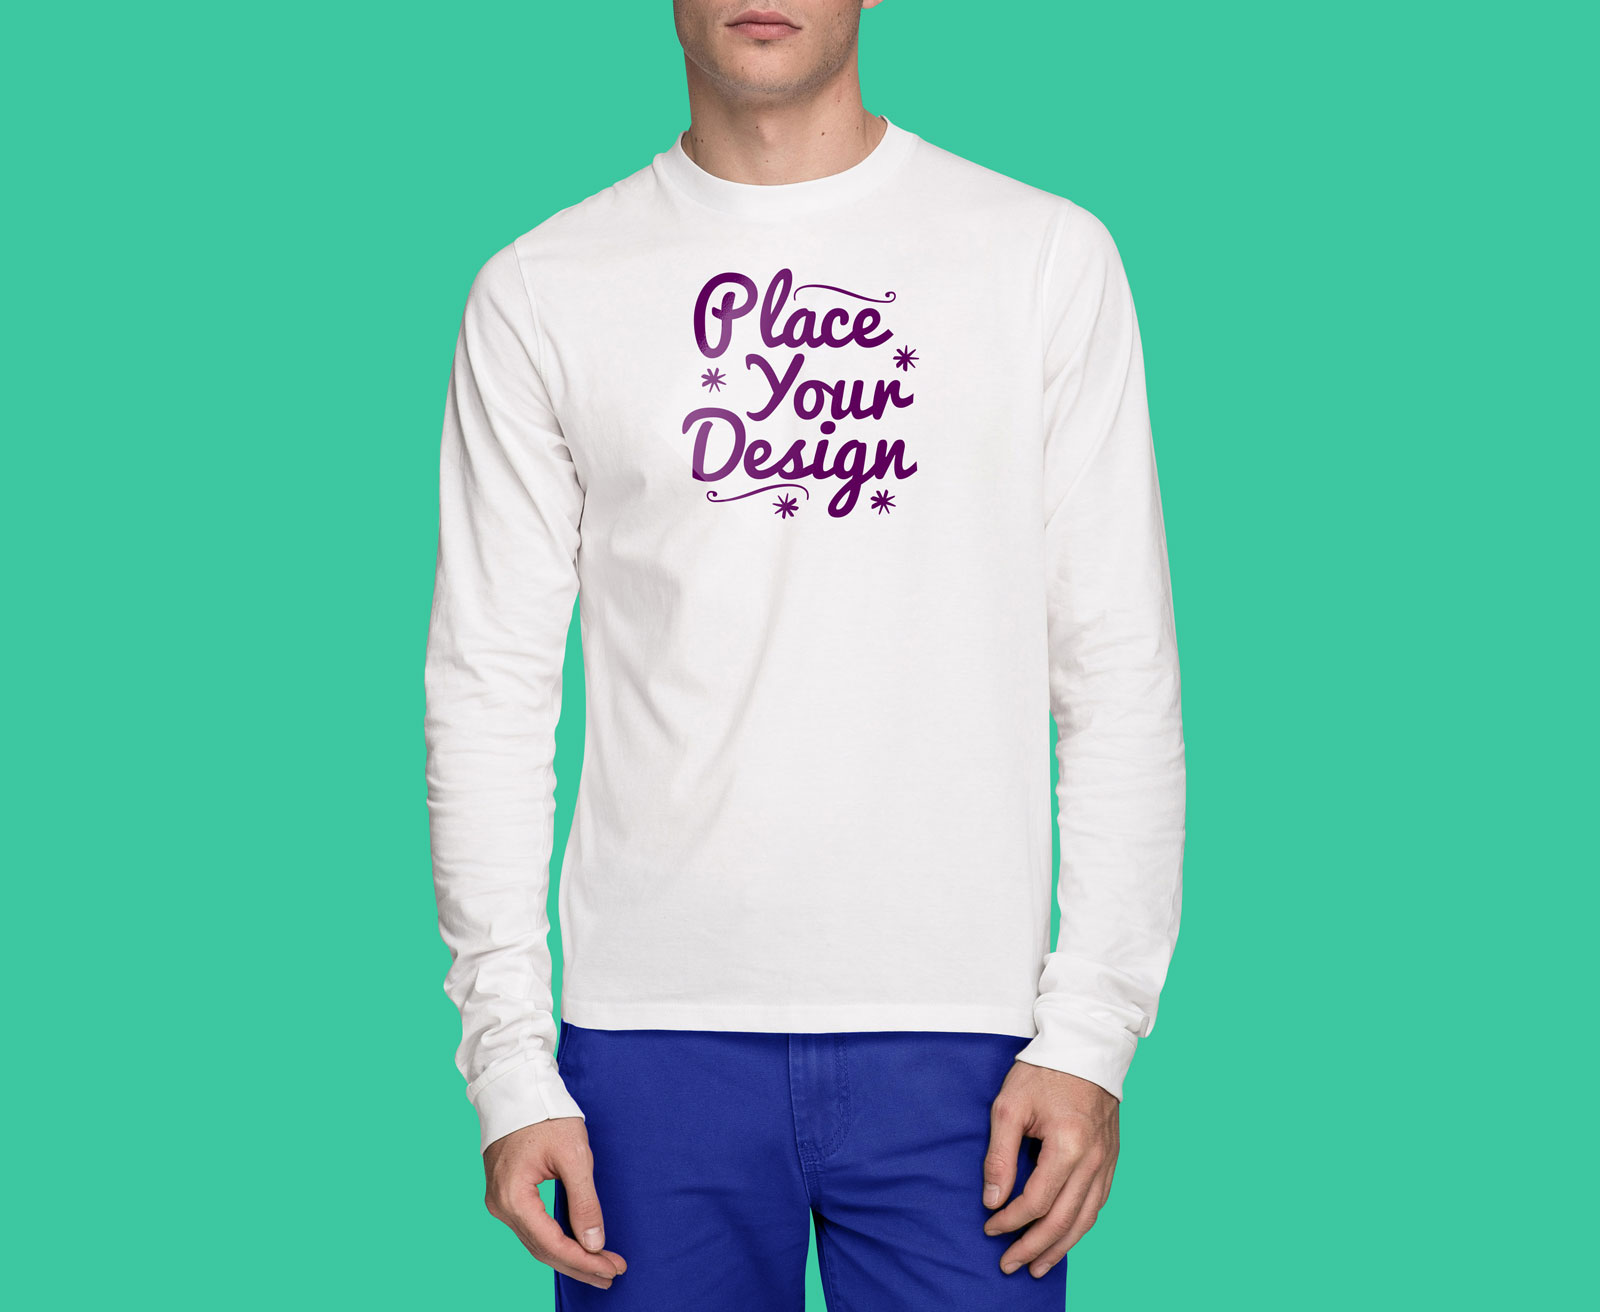 T shirt white mockup - Free Frontside White Long Sleeves T Shirt Mockup